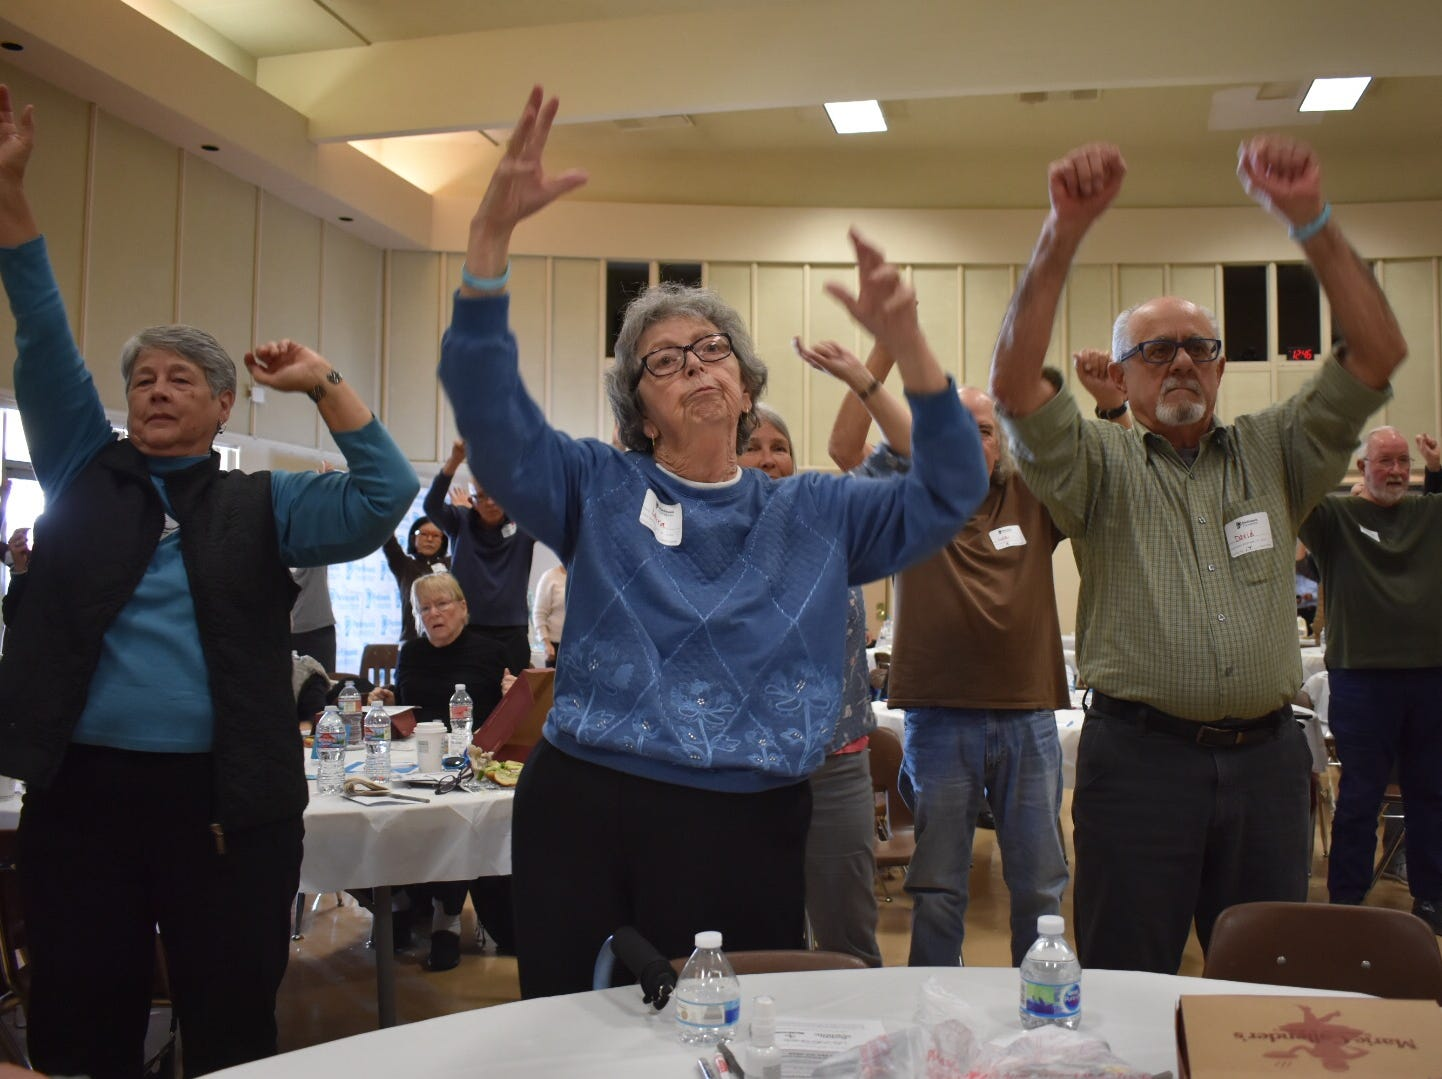 Laura Anter, middle, who has Parkinson's disease, exercises with her husband, David Anter, at a Camarillo conference on the disease.